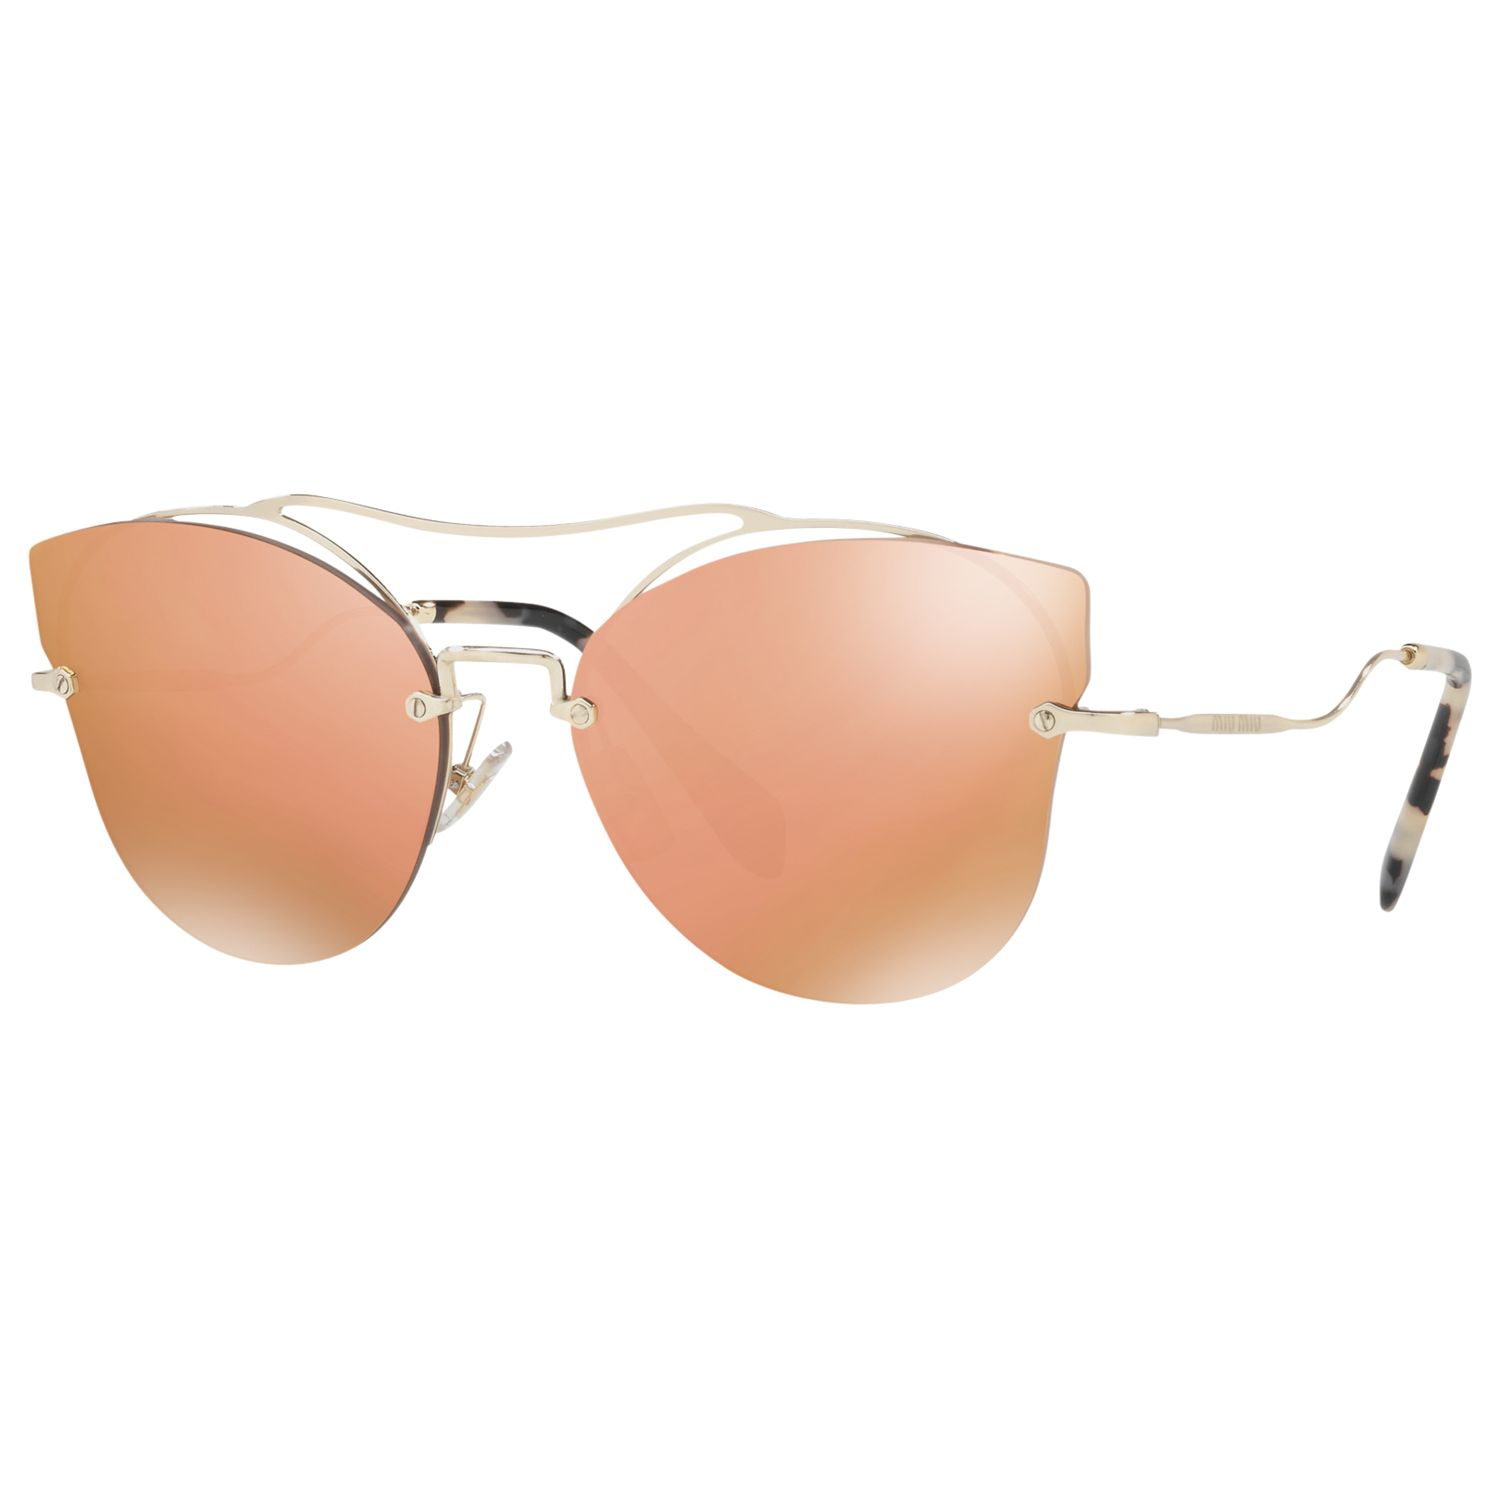 Miu Miu Miu Miu MU 52SS Cat's Eye Sunglasses, Silver/Mirror Orange